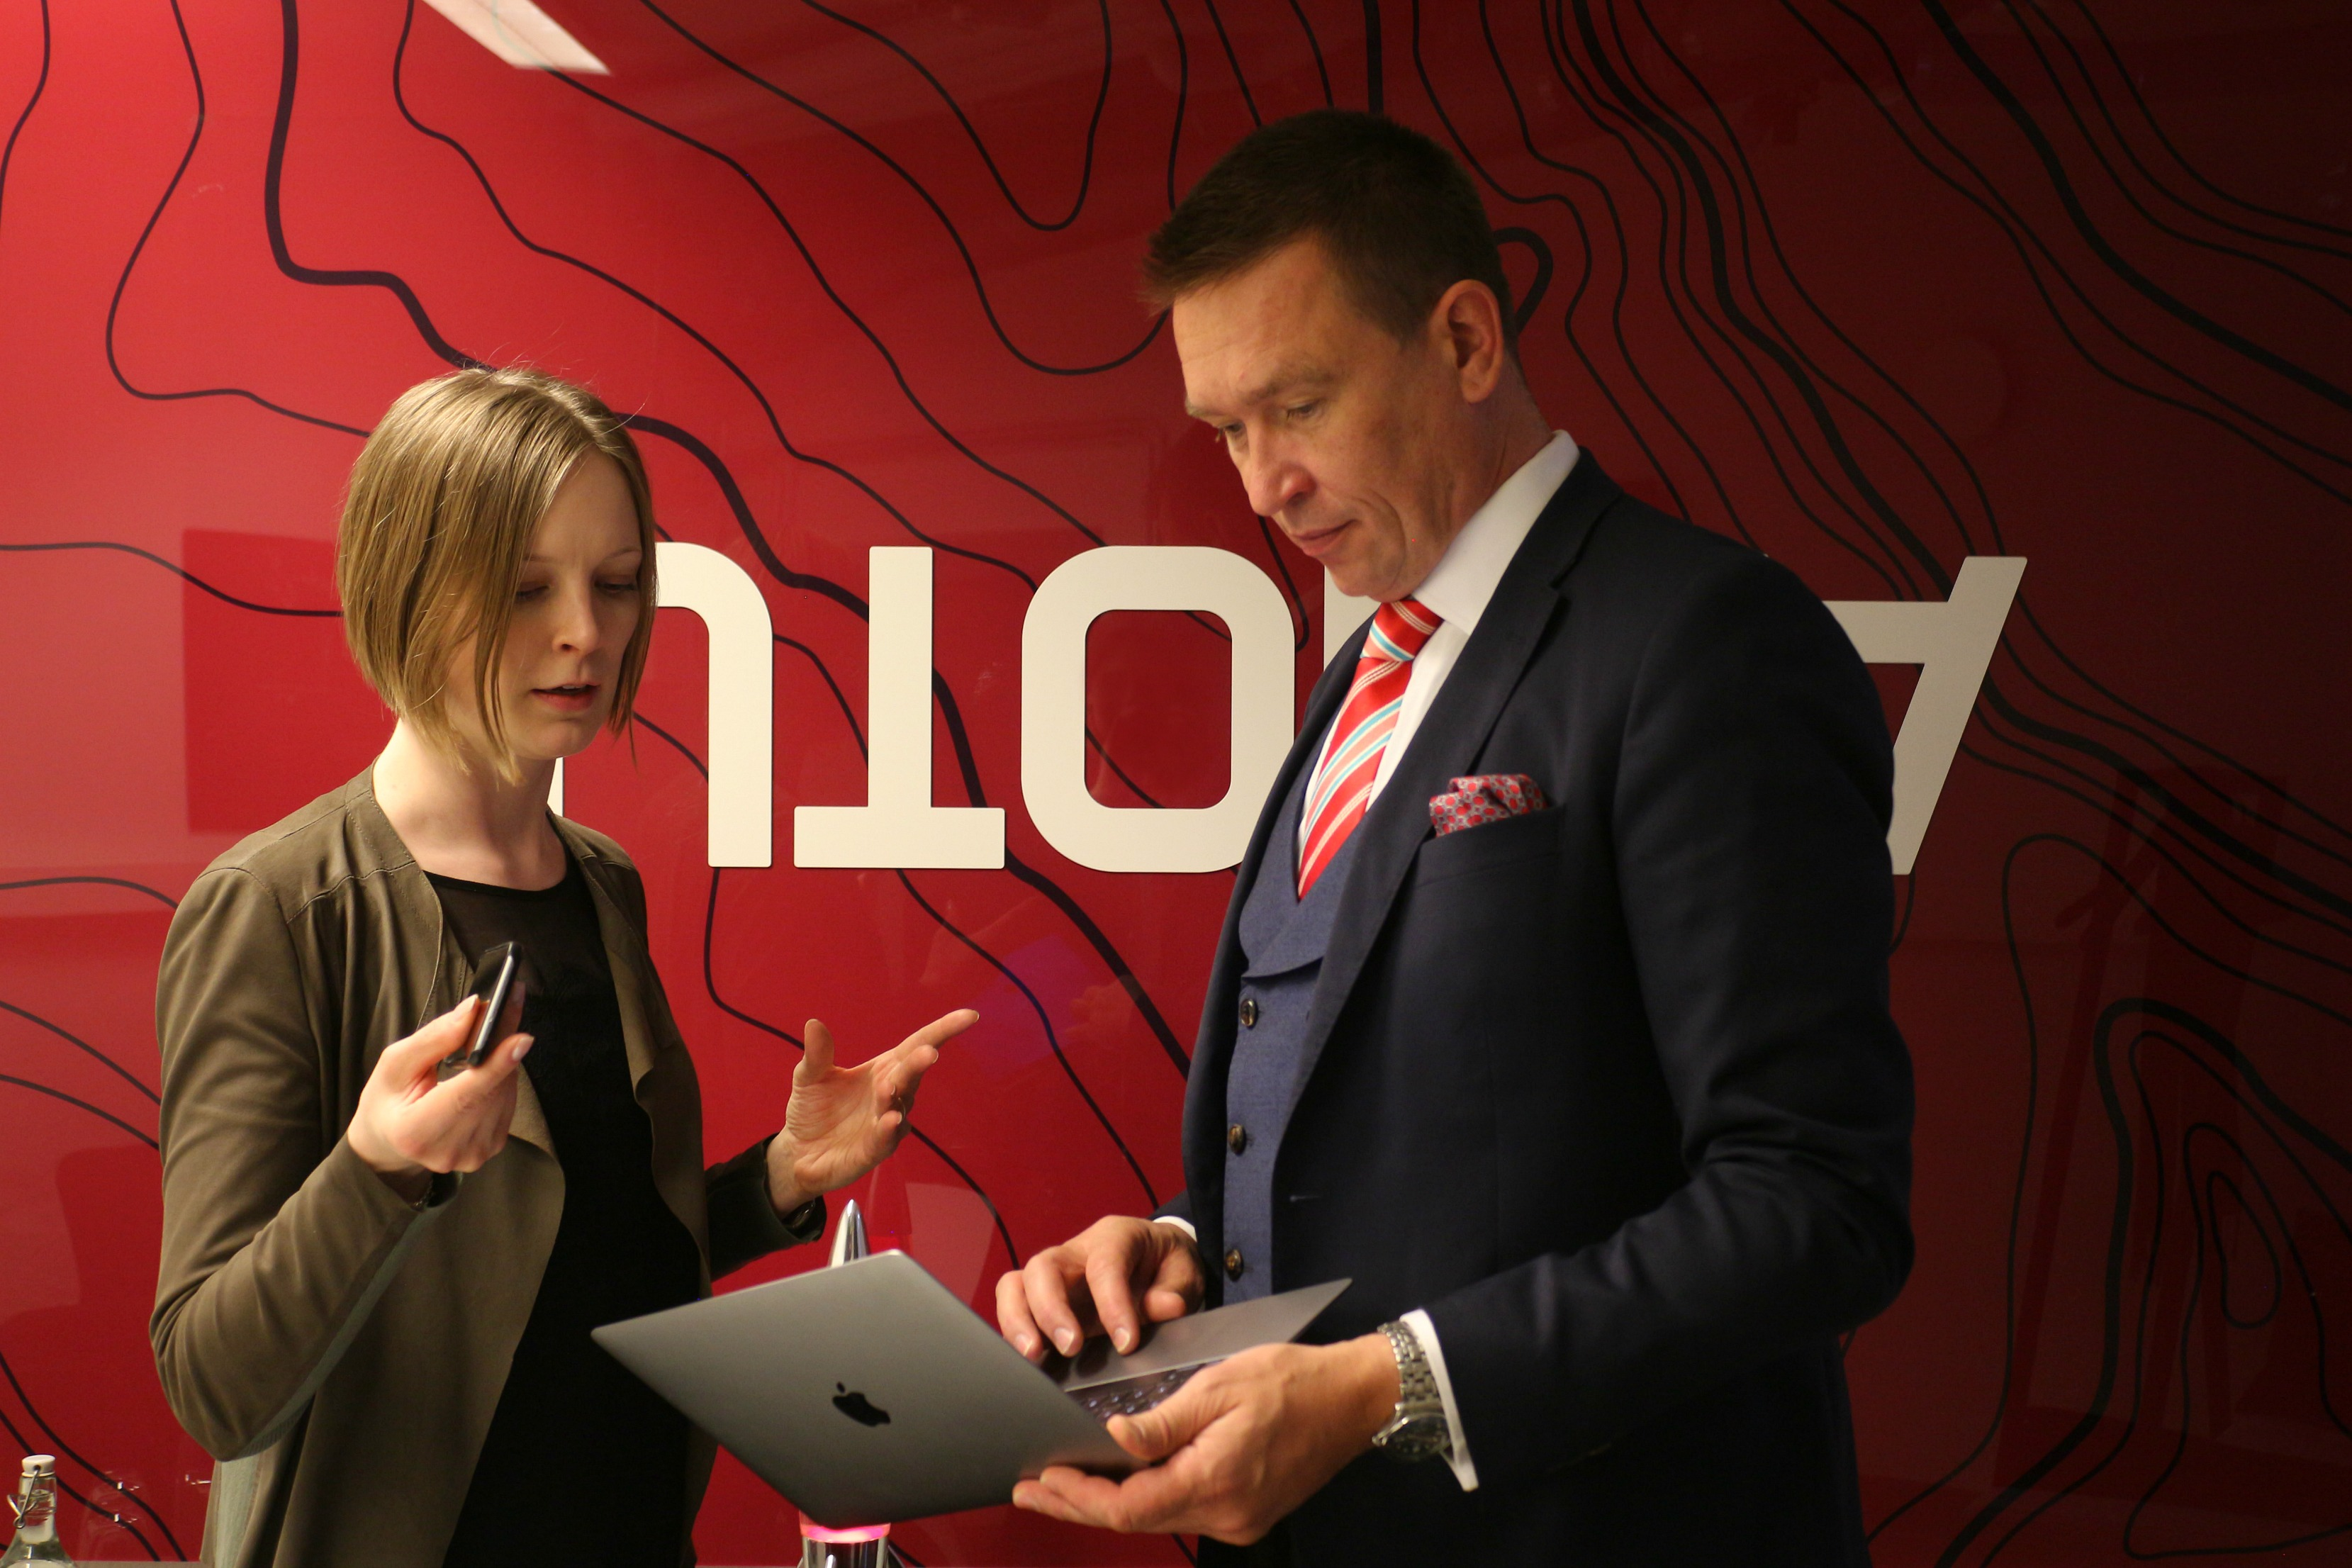 """""""The Department of Information and Computer Science was ranked among the ten best in the world in AI and machine learning in 2012"""" says Mari-Sanna Paukkeri, pictured here with Chair of the Board Tom Packalén. """"The level of research is very high in Finland."""""""